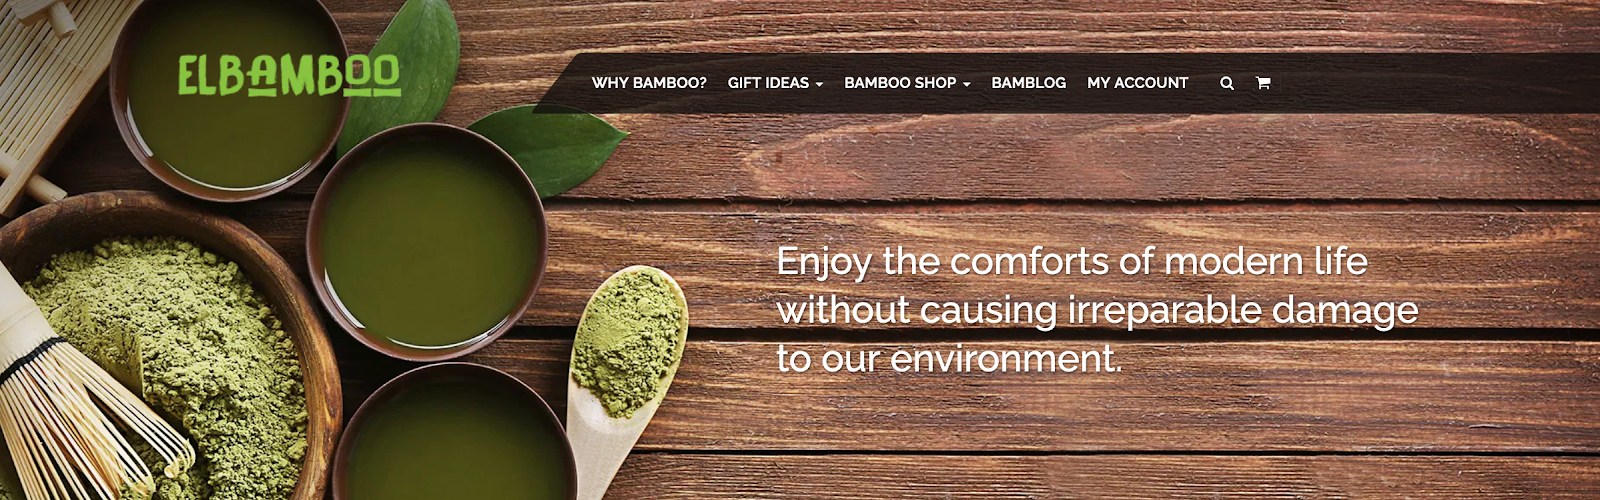 ElBamboo homepage banner - Influencer Collab Opps